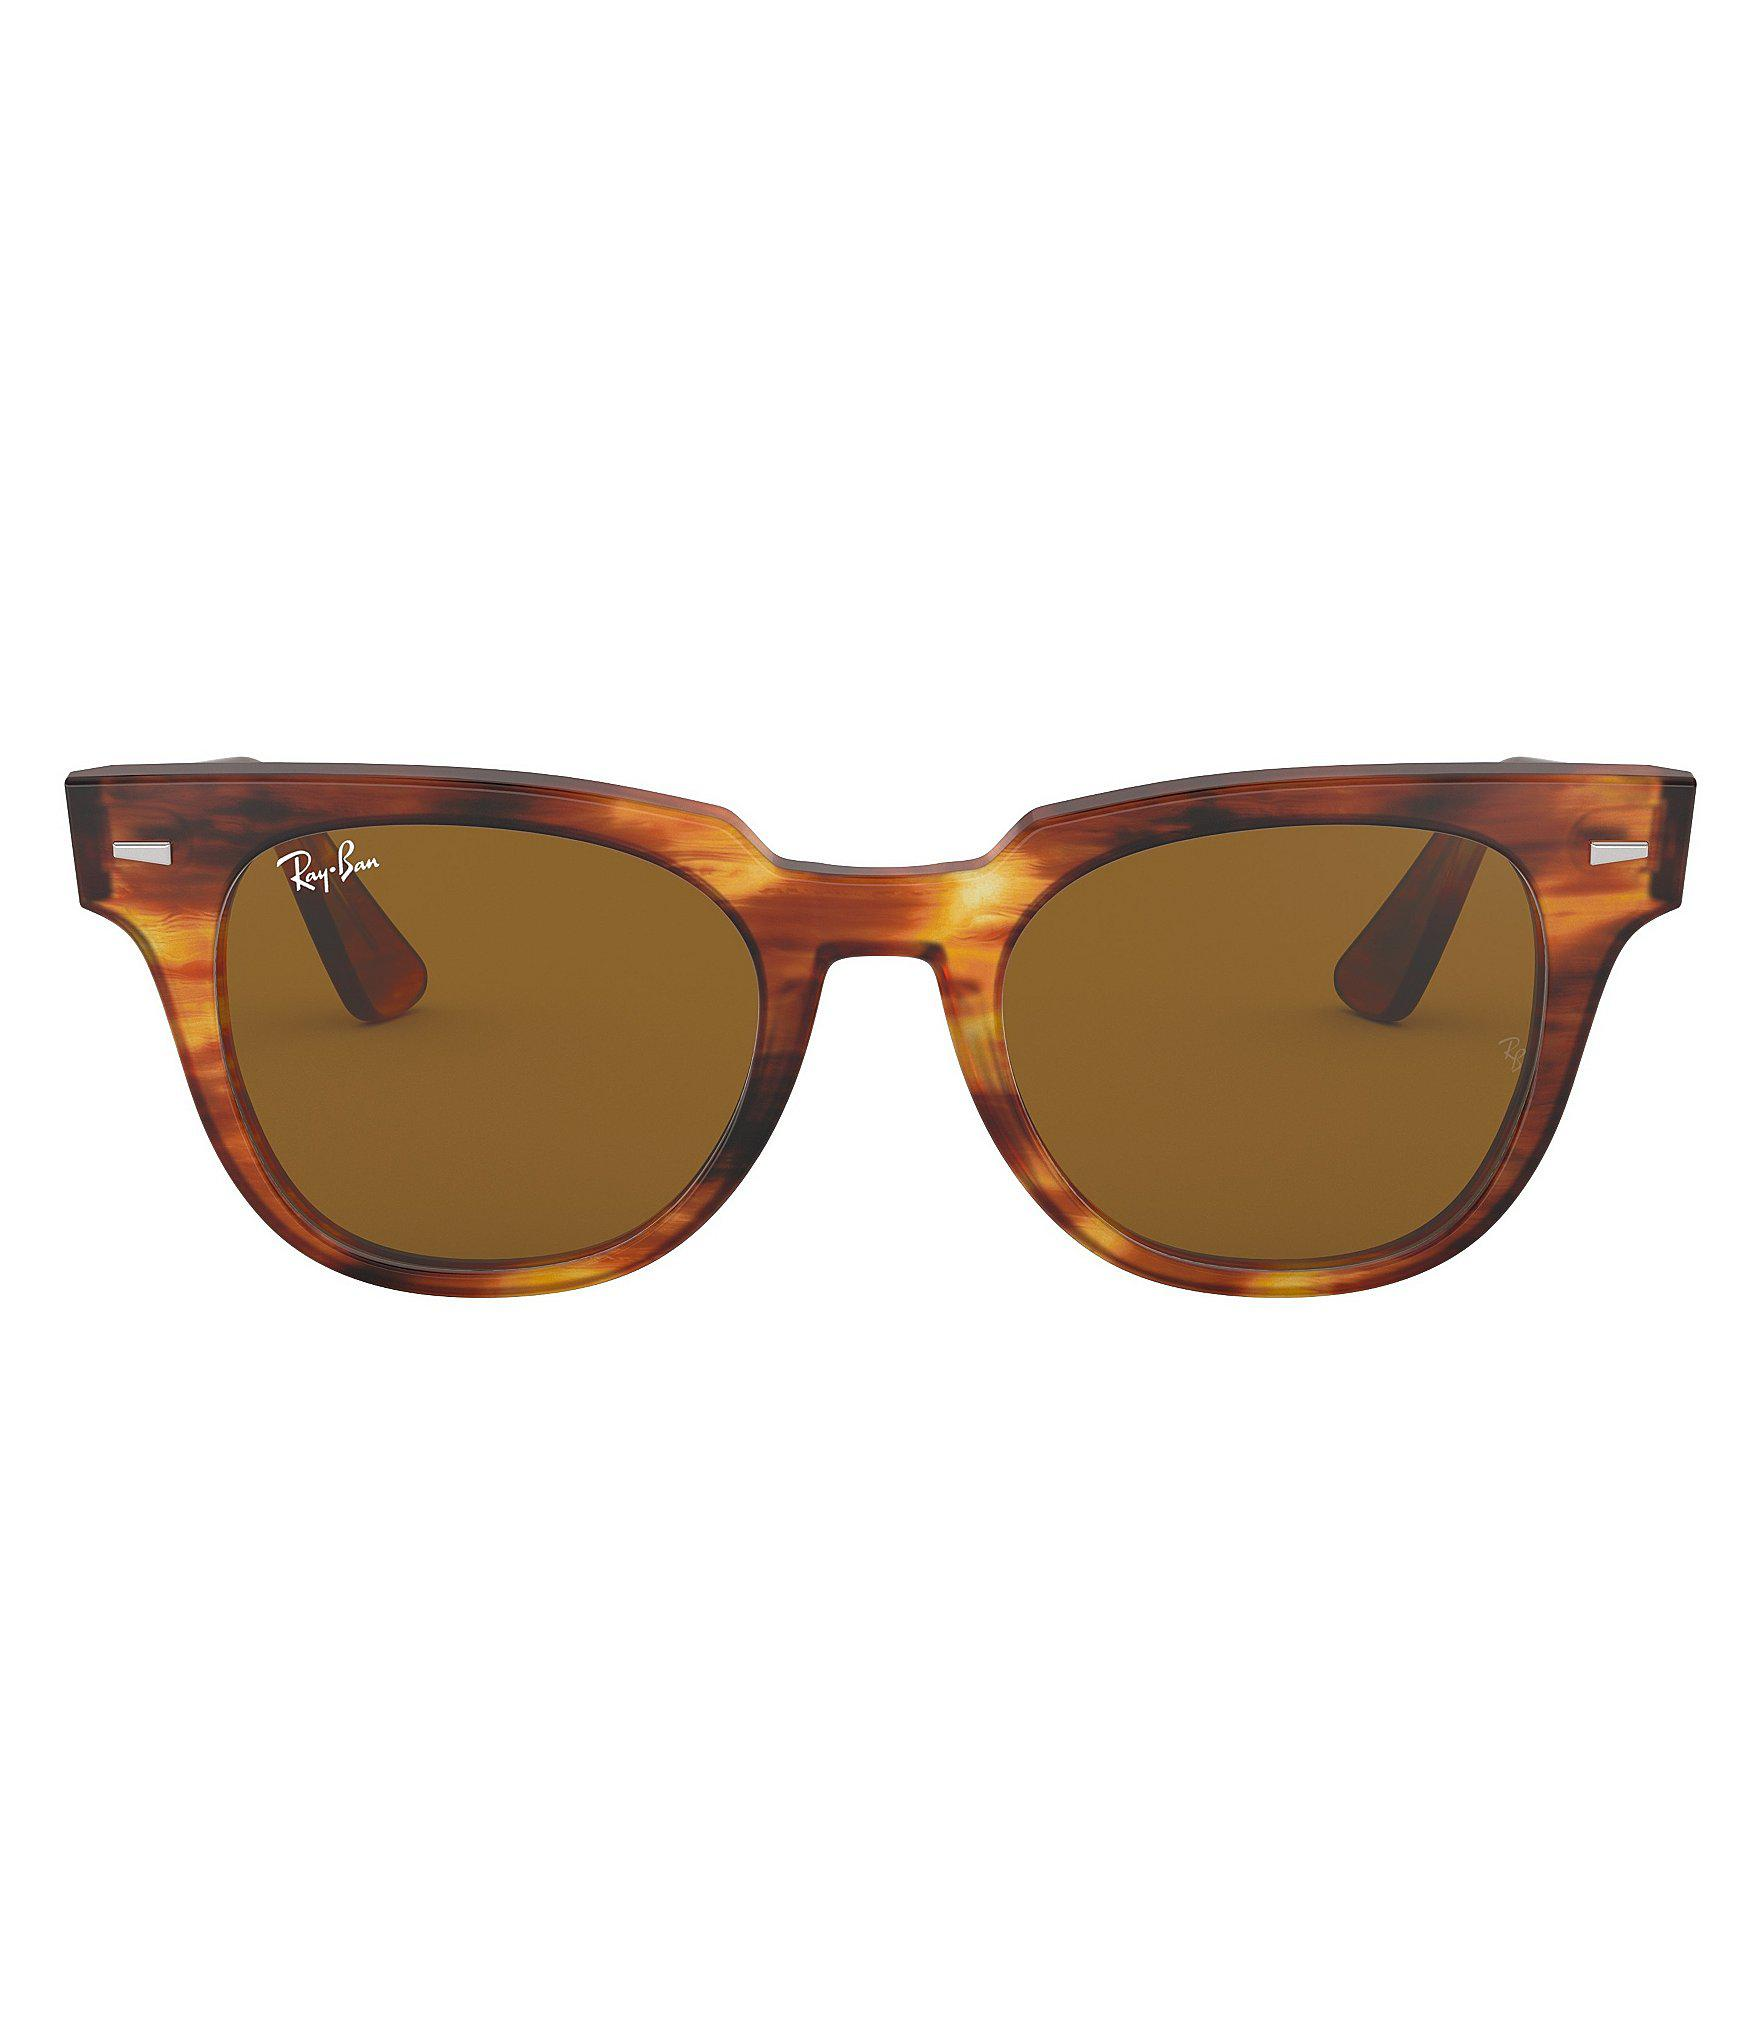 78588fab48 Lyst - Ray-Ban Meteor Classic Sunglasses in Brown for Men - Save 8%